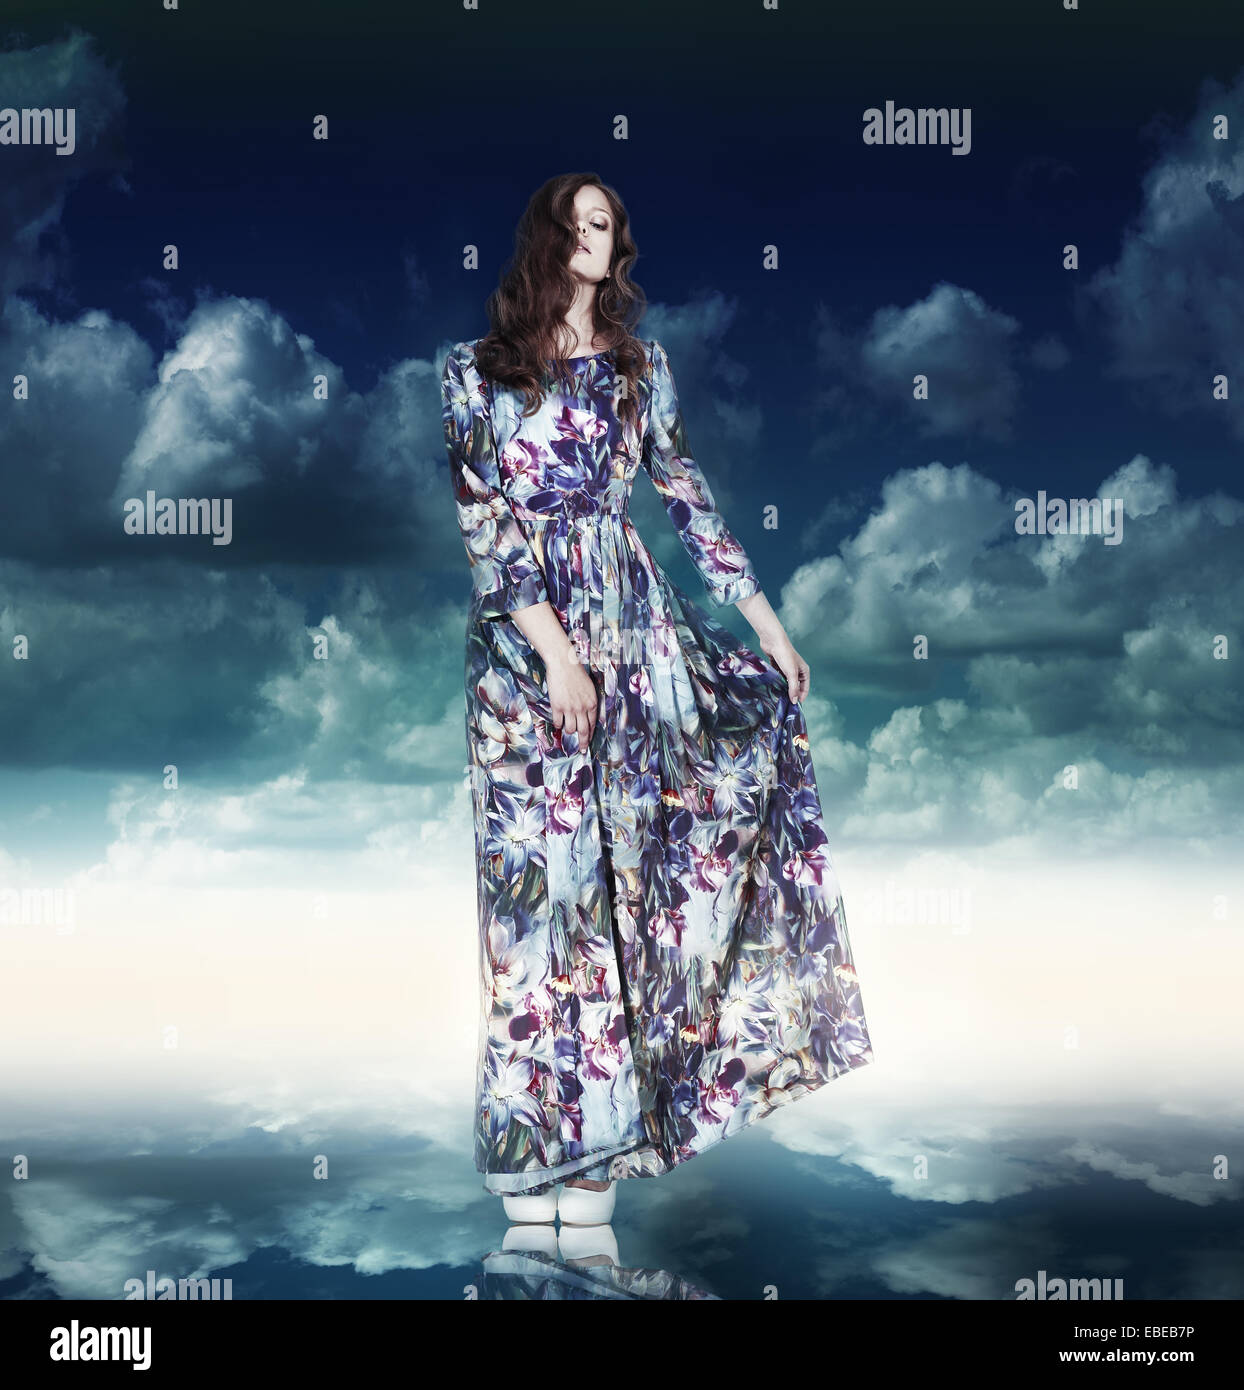 Fantasy. Luxurious Woman in Variegated Dress over Blue Sky - Stock Image